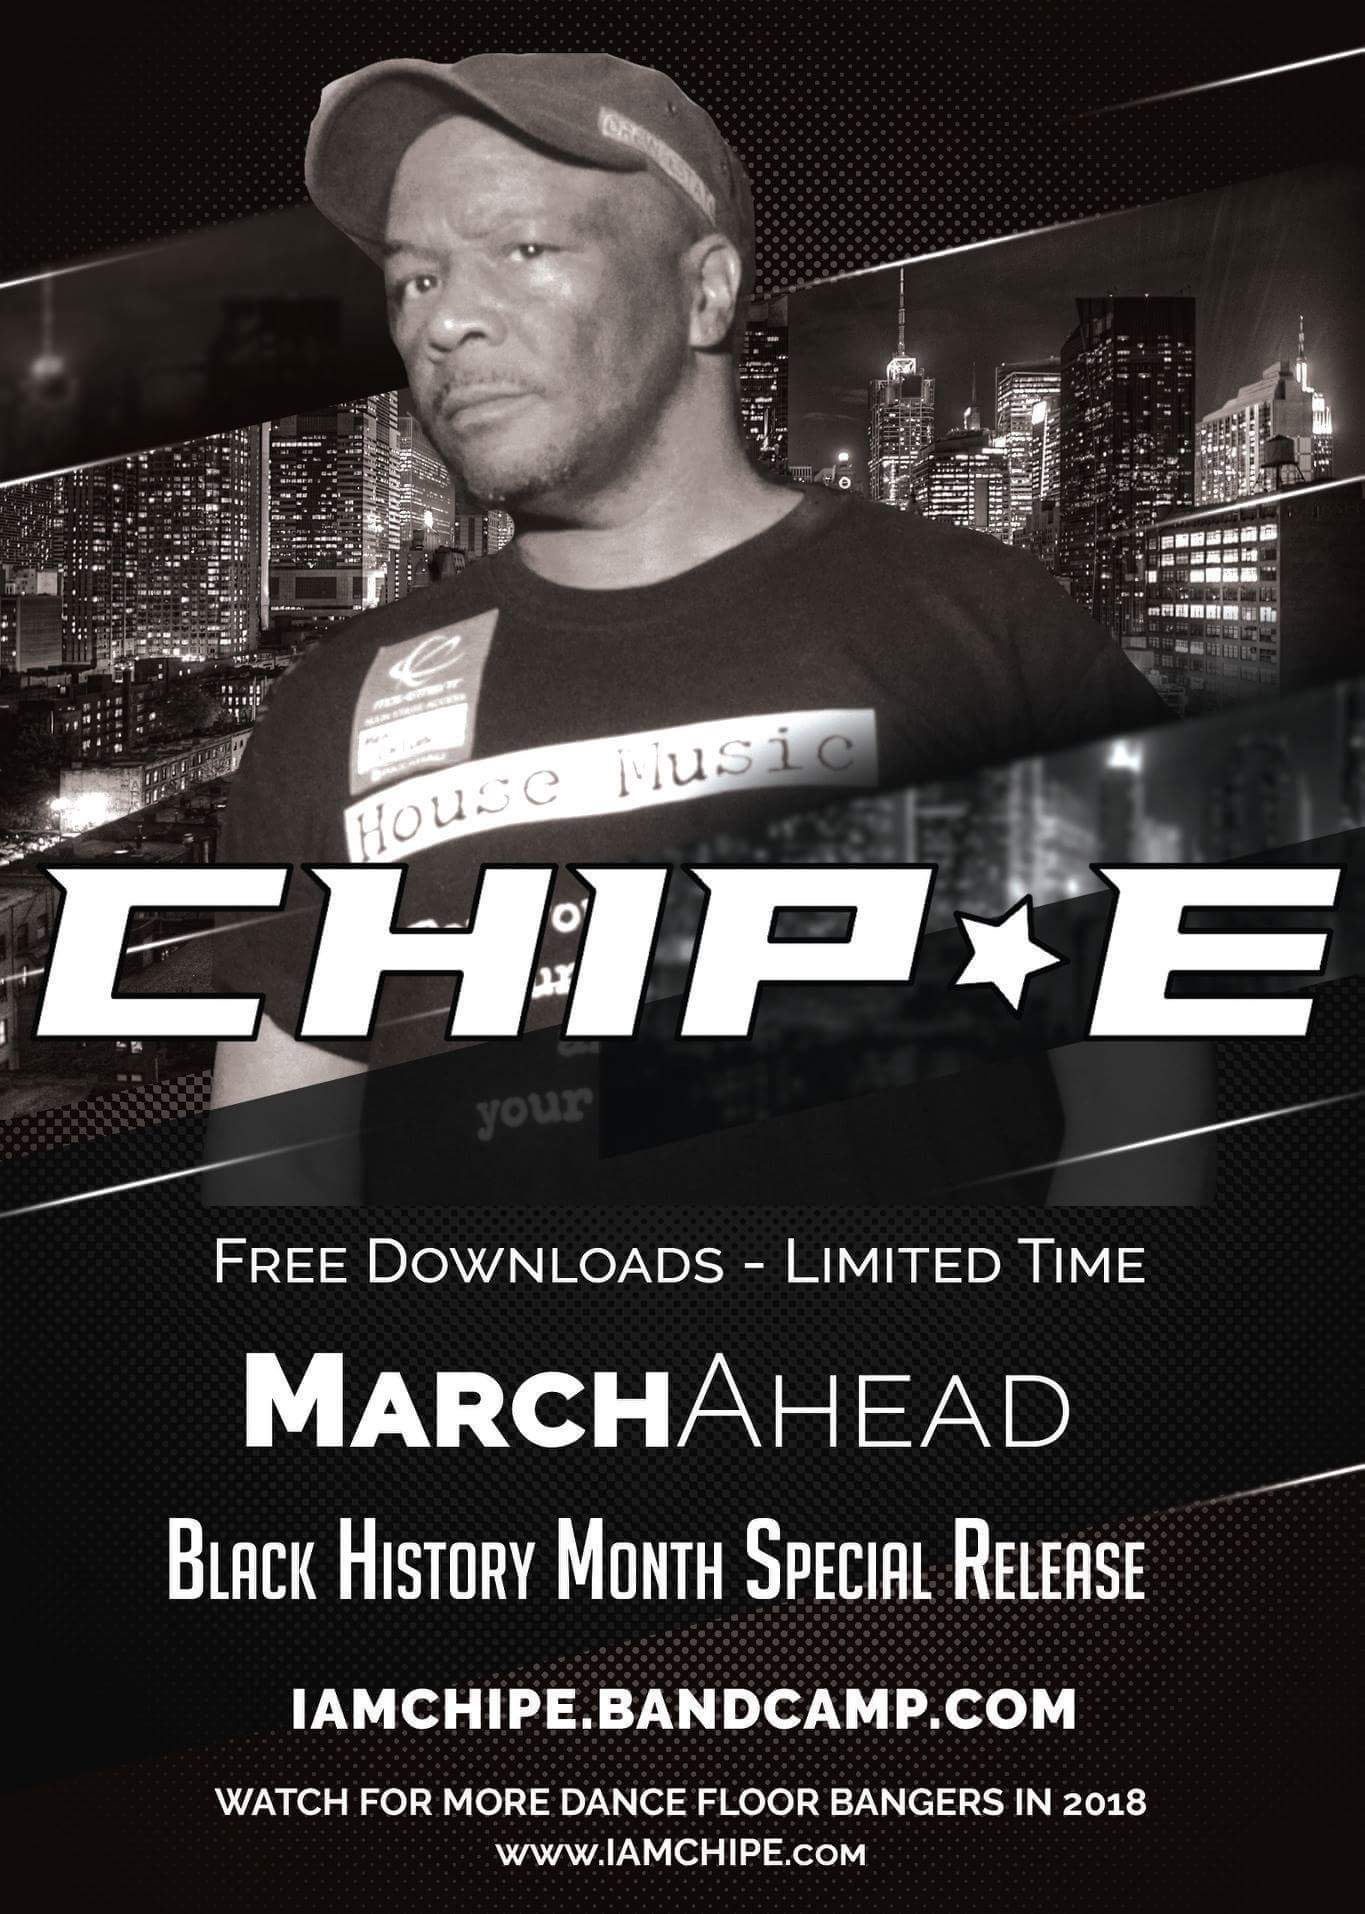 Chip E free download